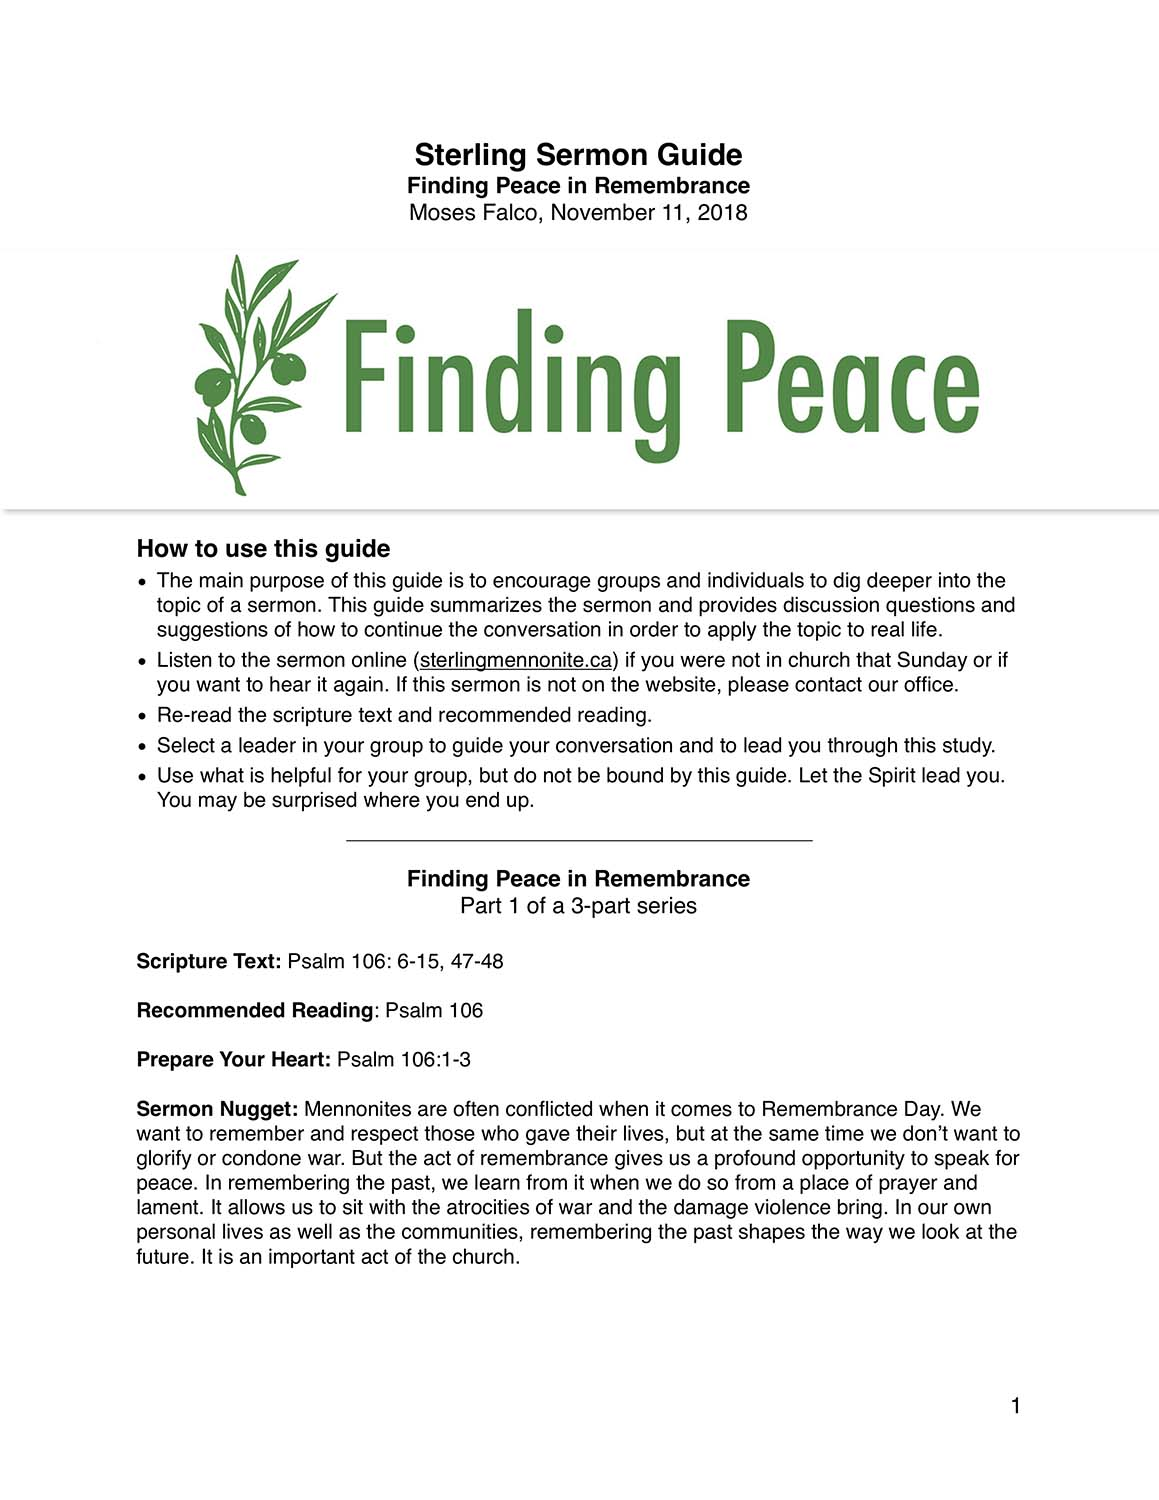 Finding Peace in Remembrance